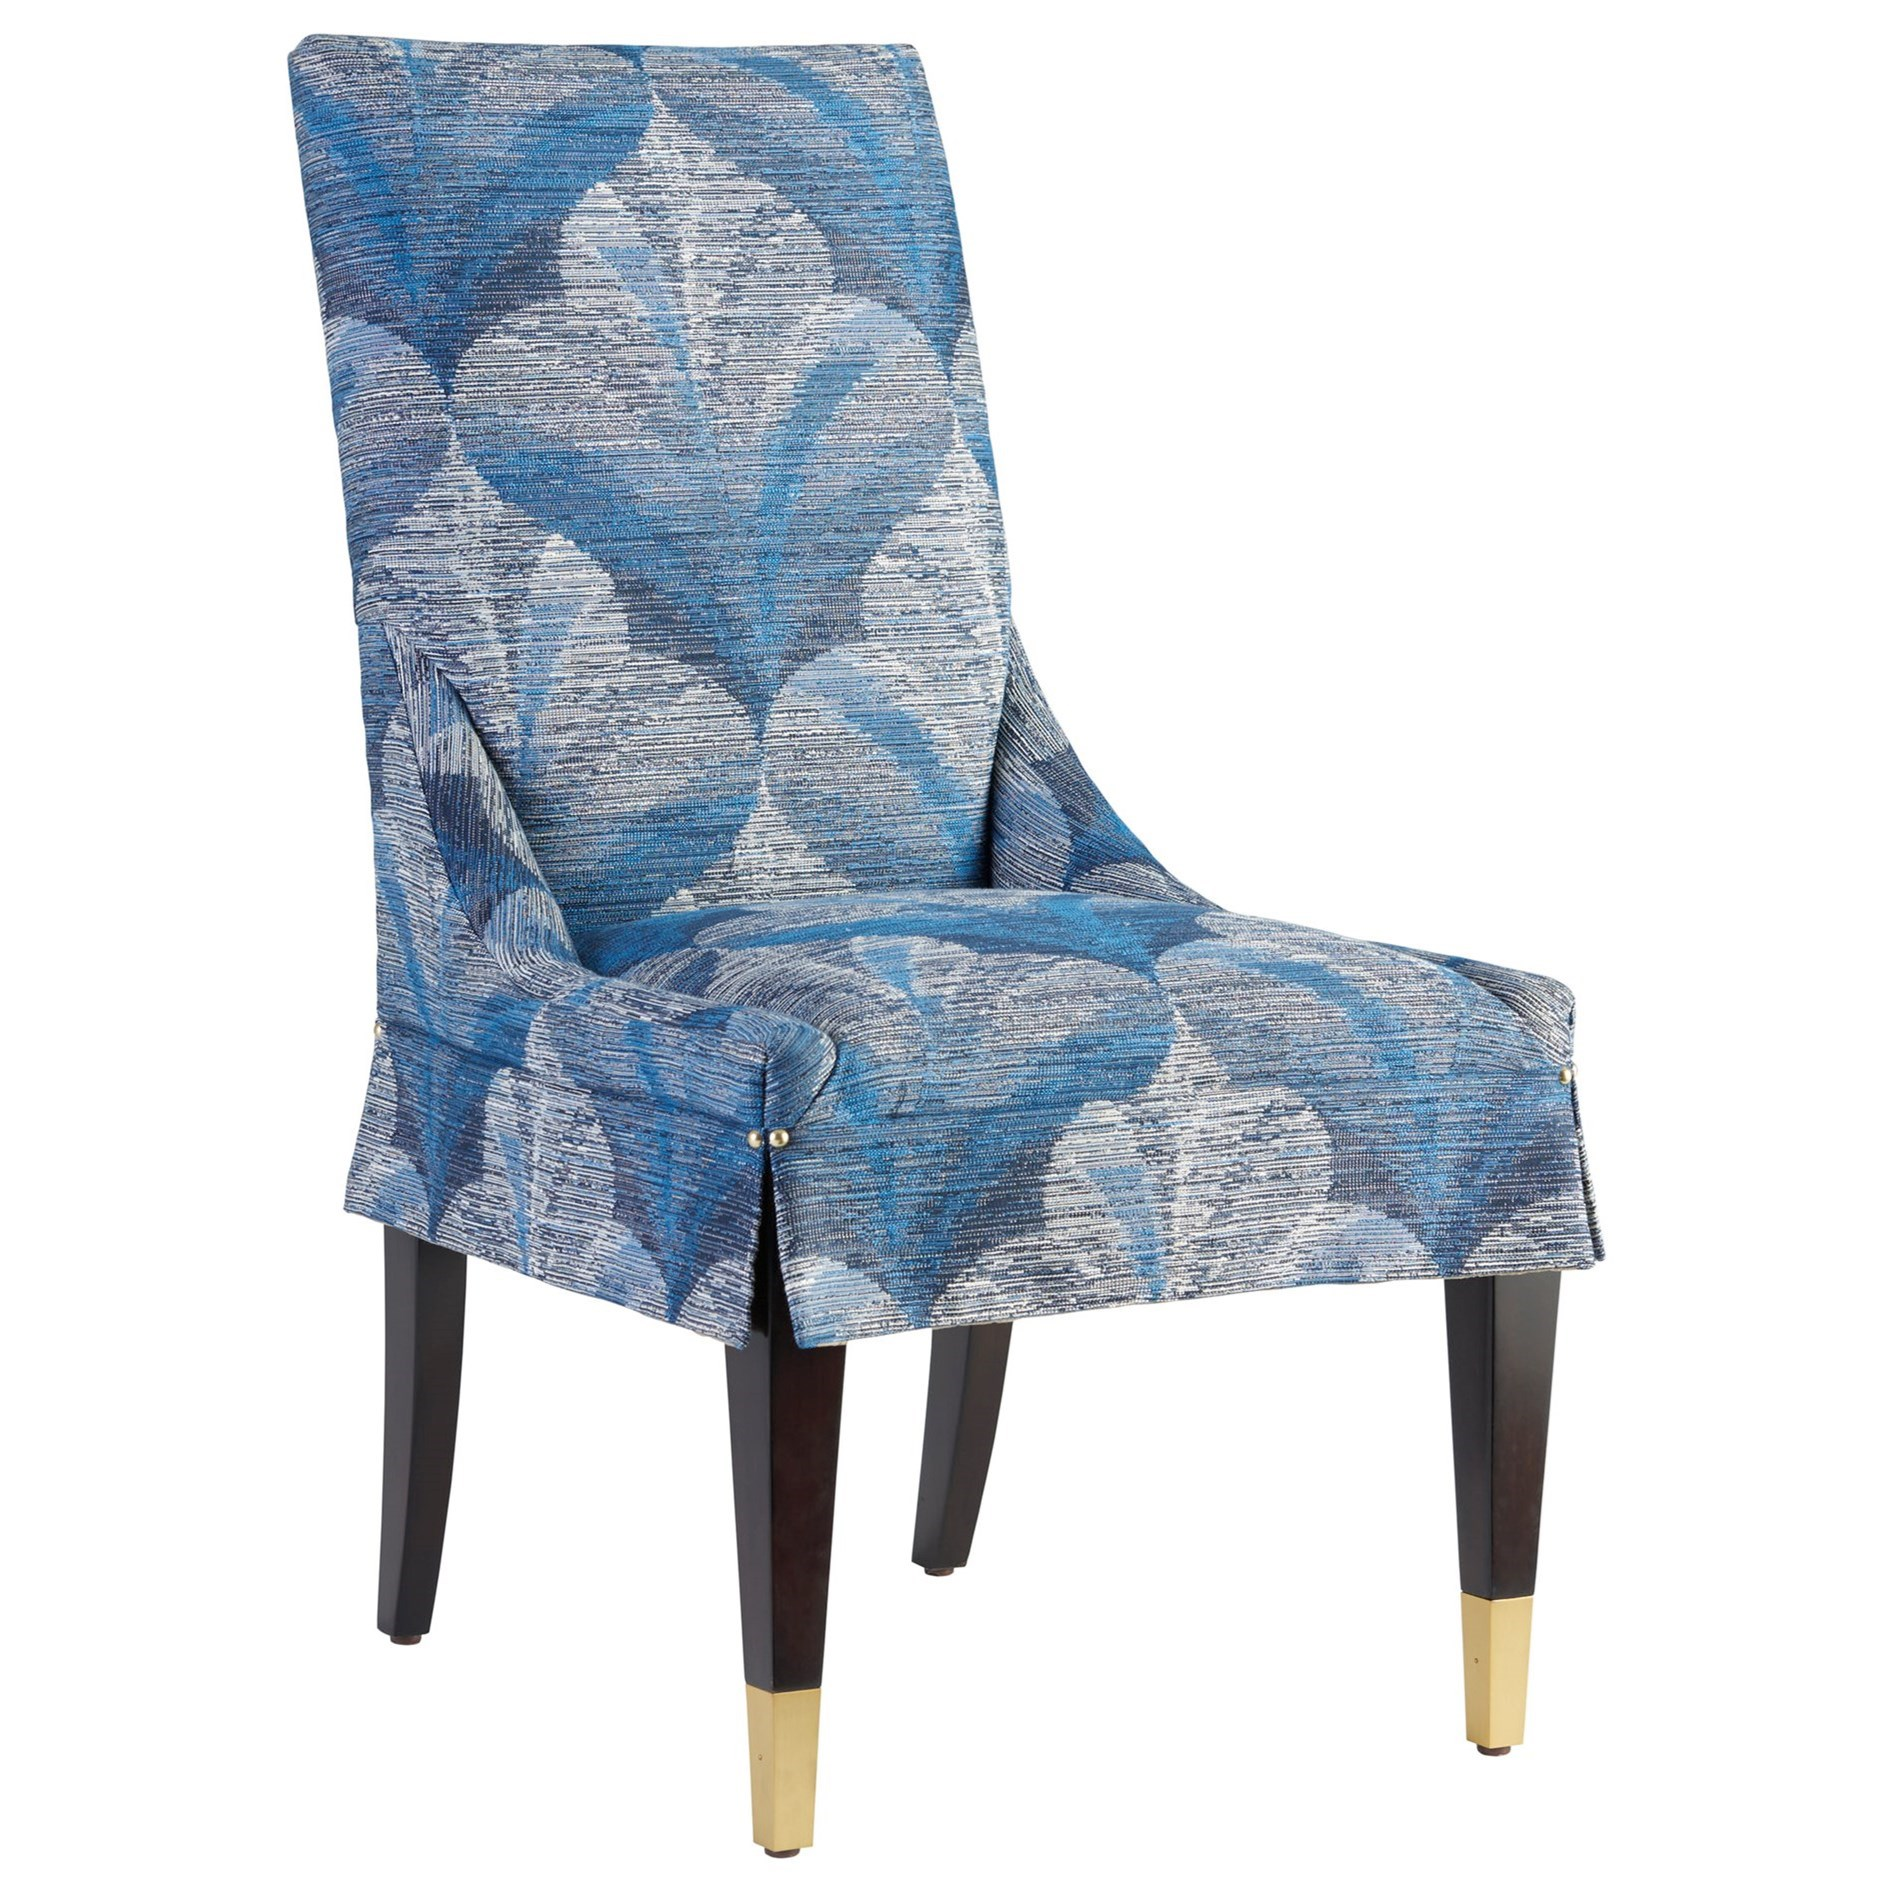 Carlyle Monarch Upholstered Side Chair - Custom by Lexington at Baer's Furniture